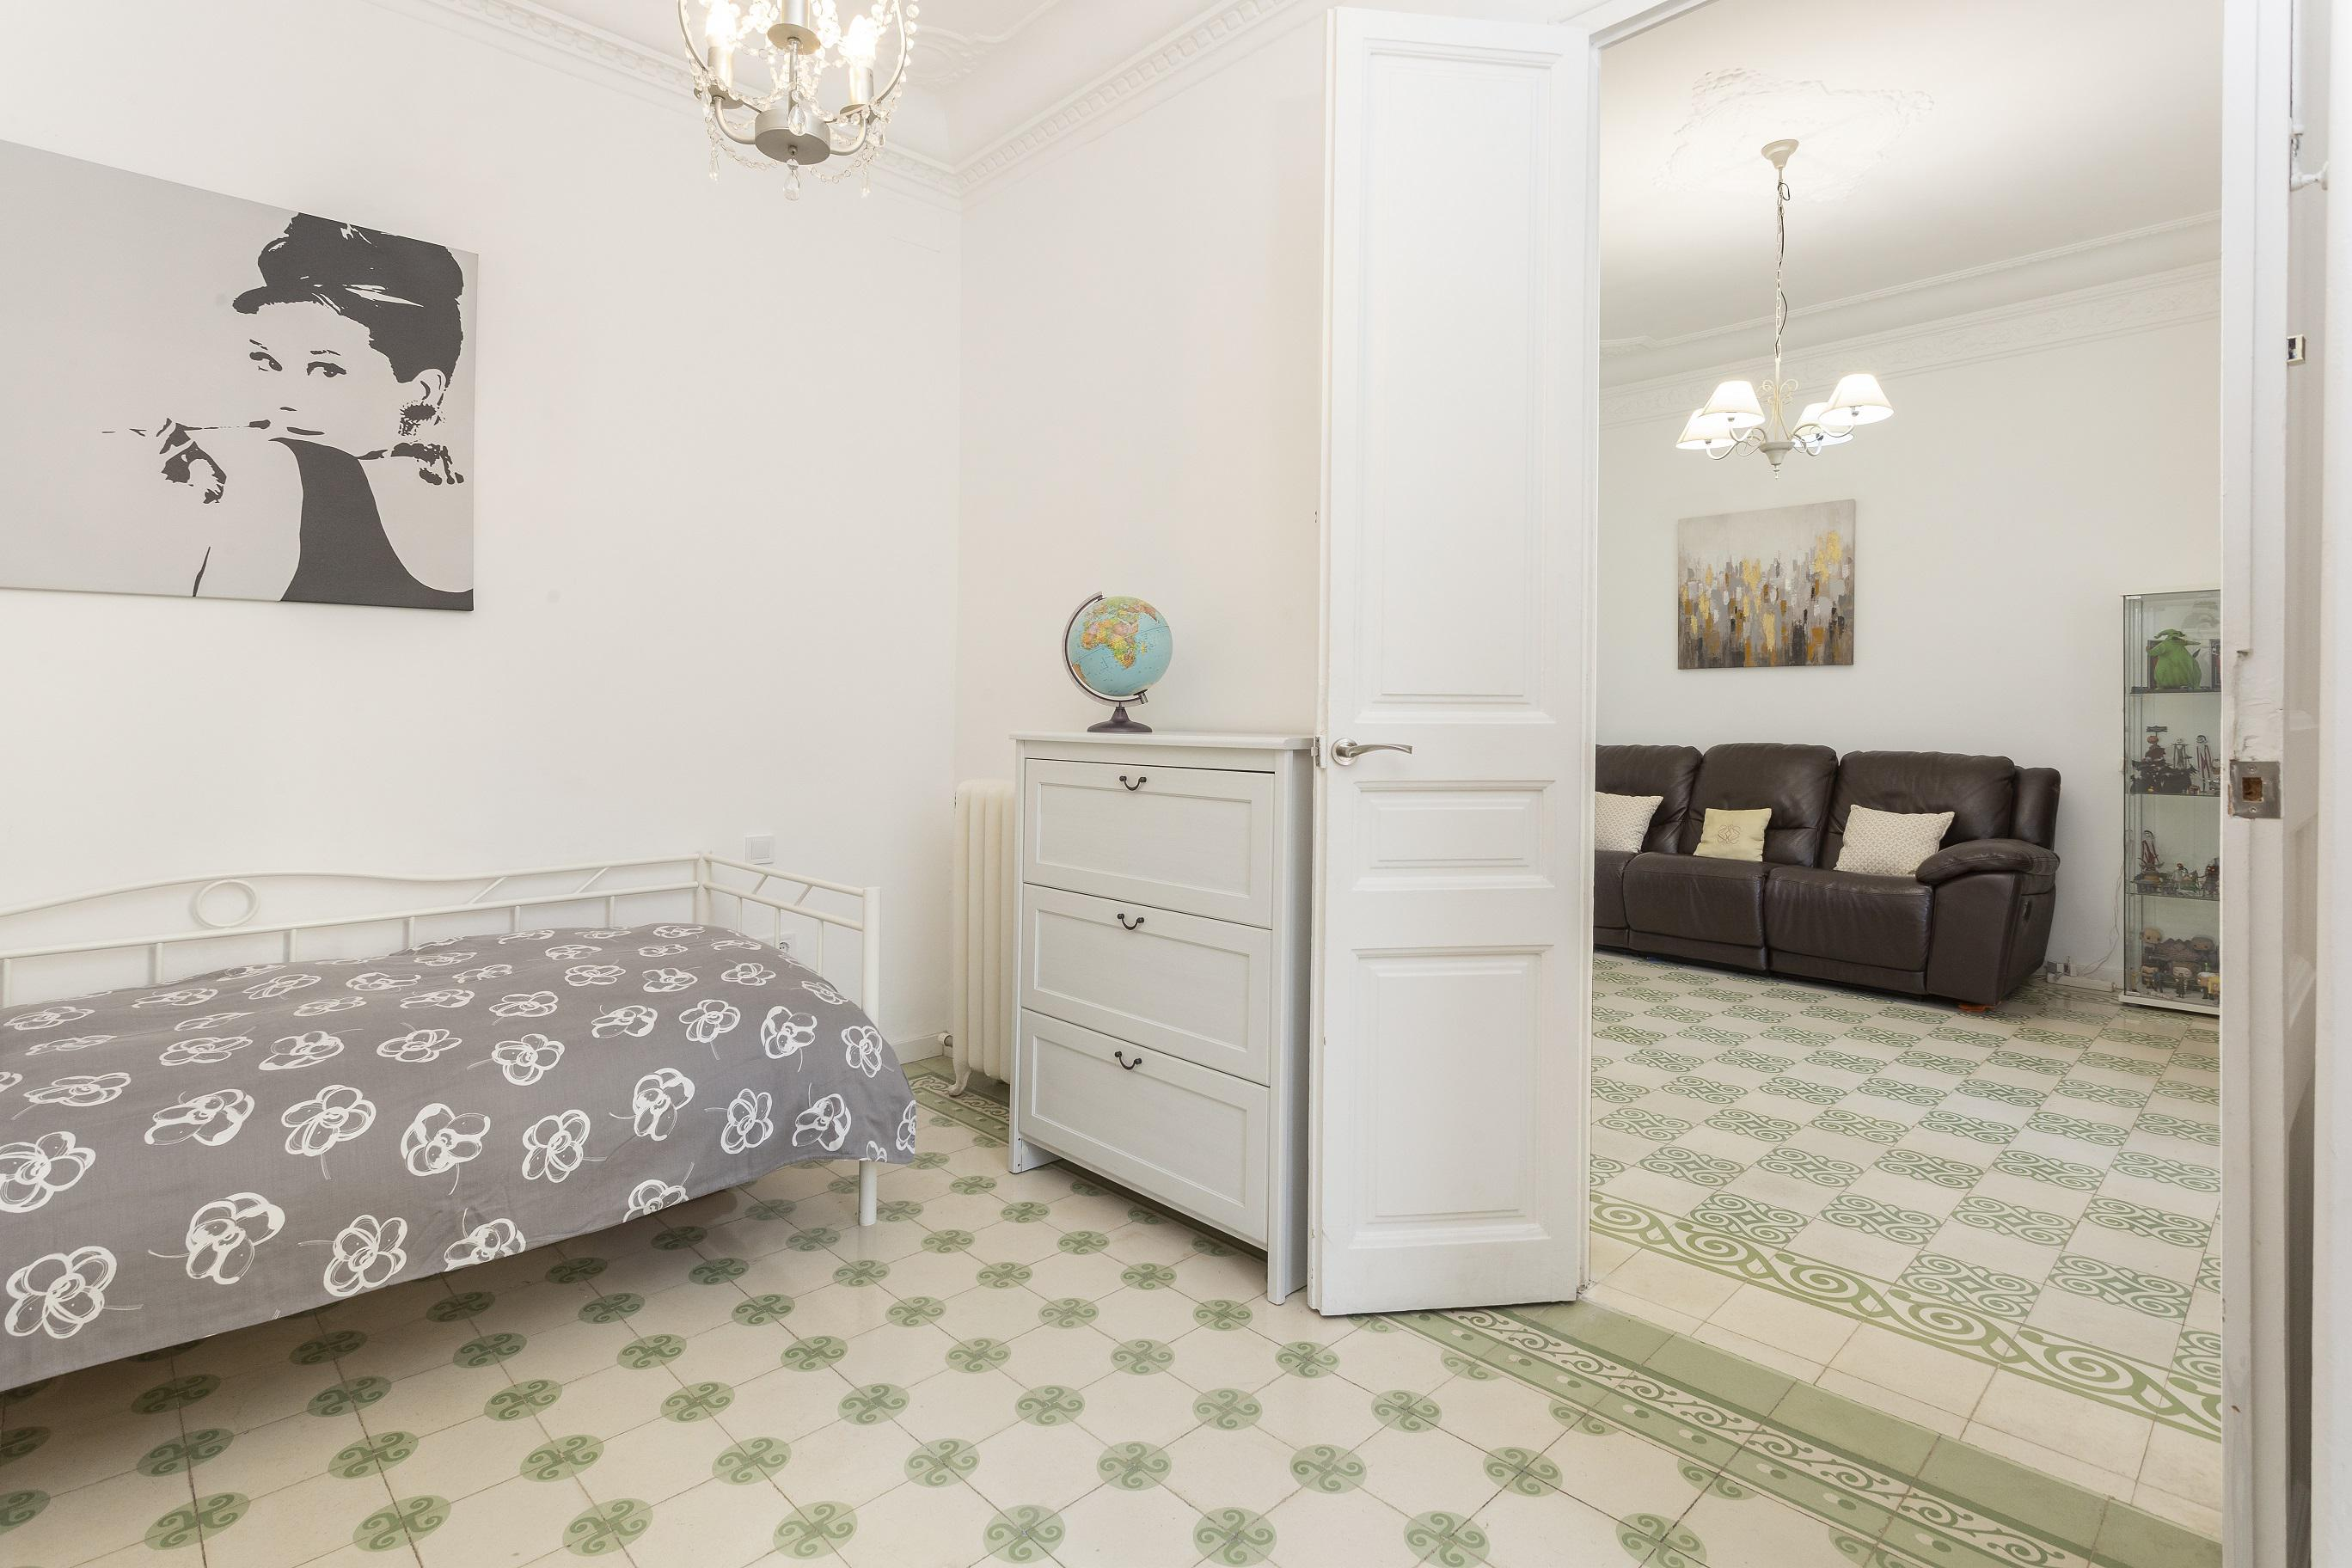 236190 Apartment for sale in Eixample, Old Left Eixample 7